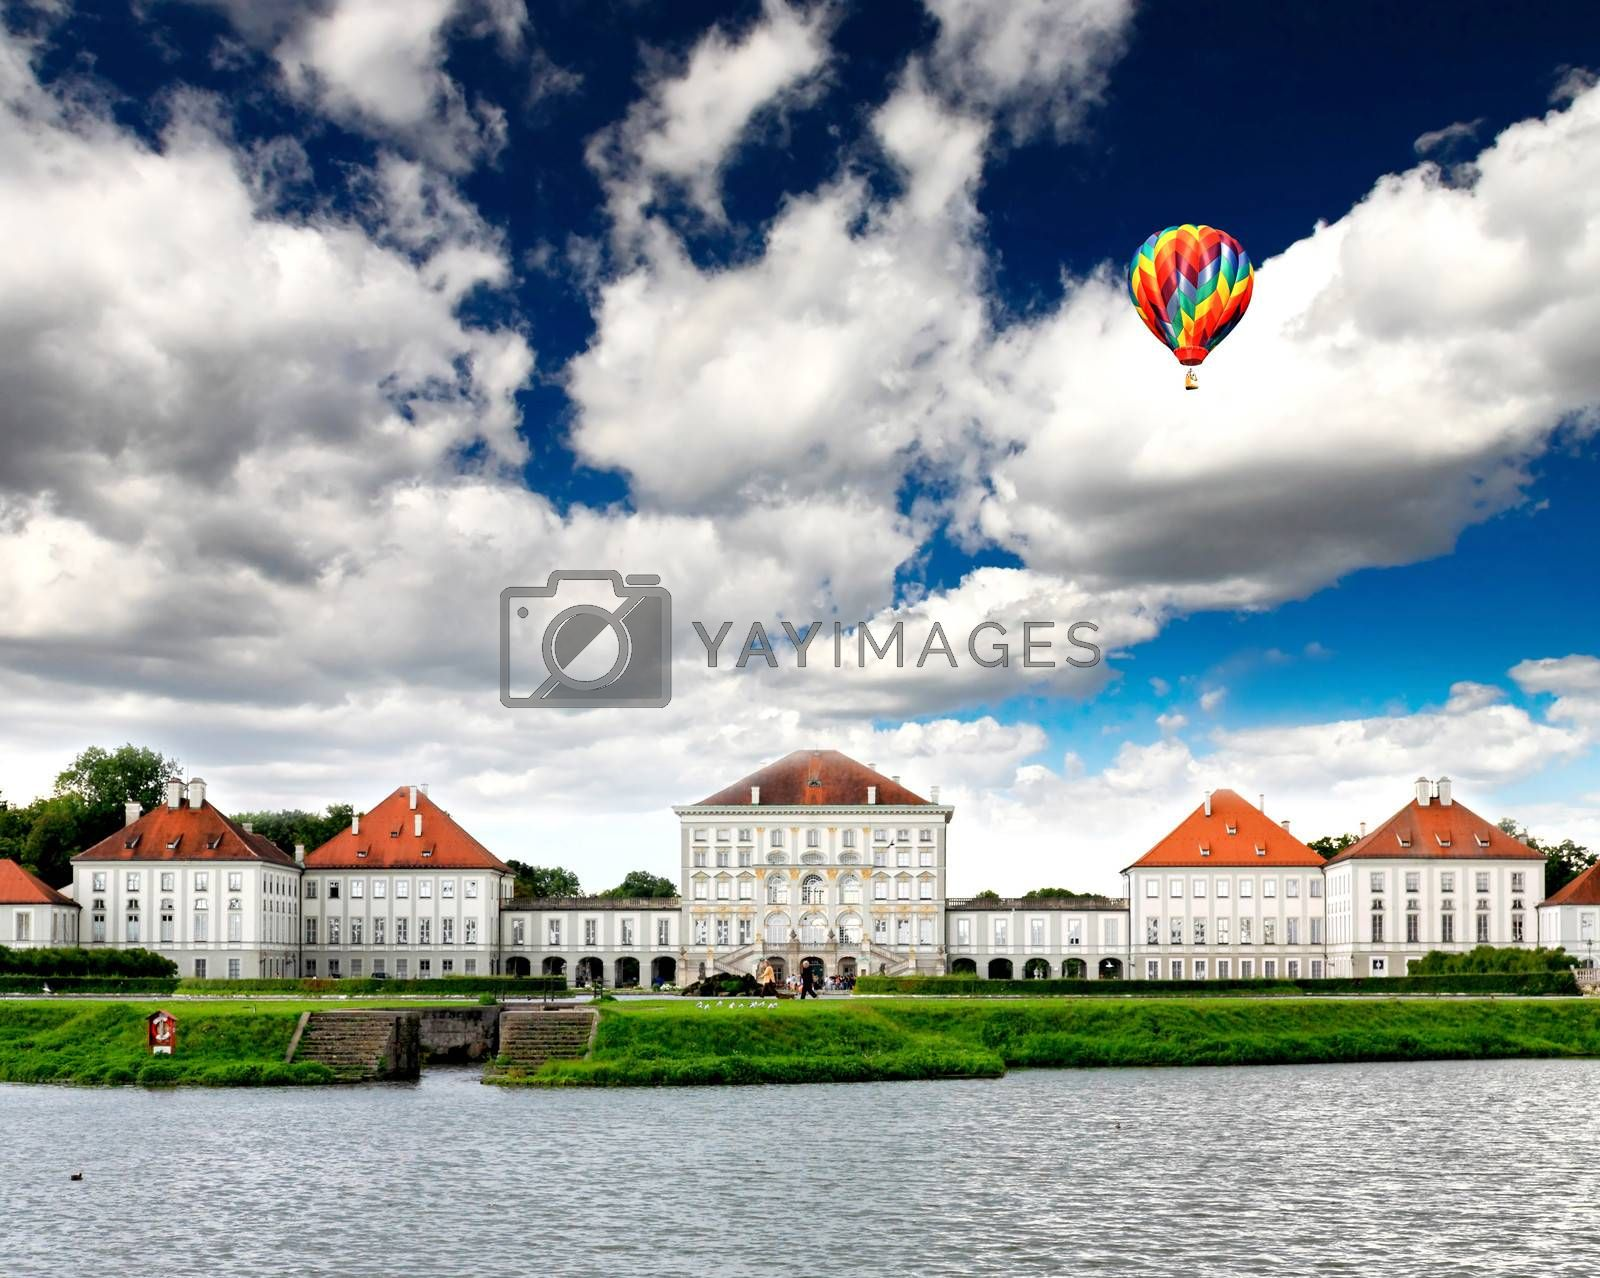 The Nymphenburg Palace in Munich Germany